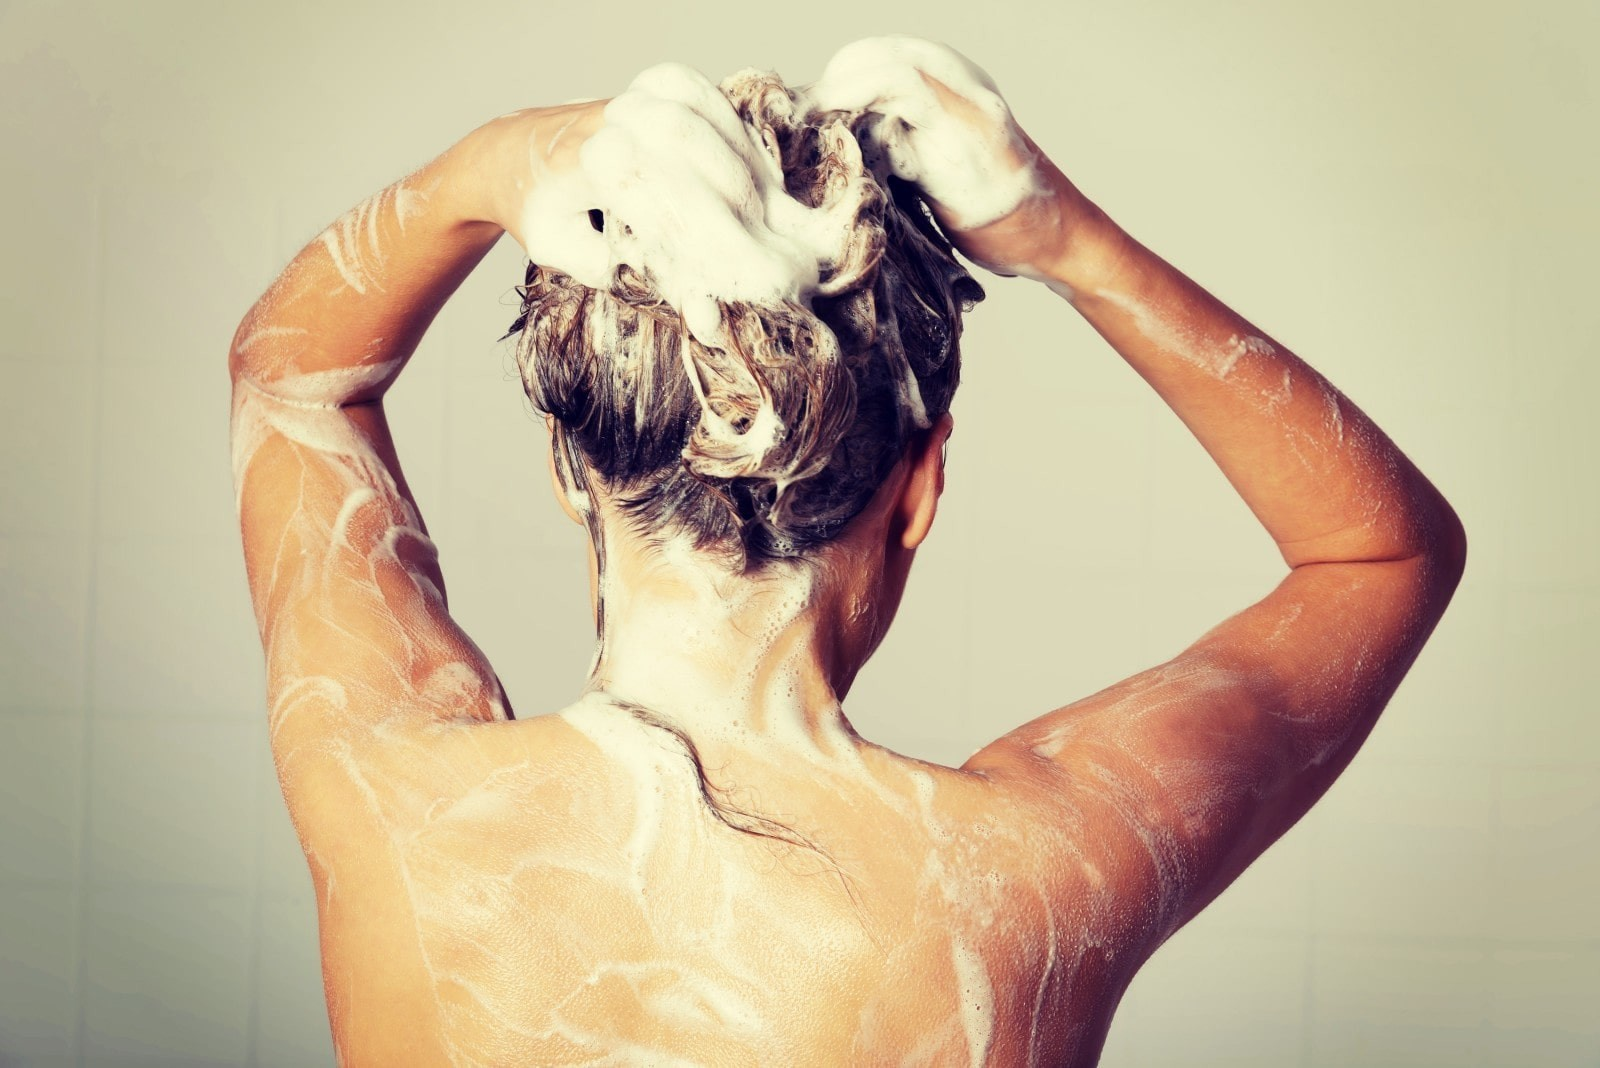 person pictured from behind cleaning their hair, with soap suds.